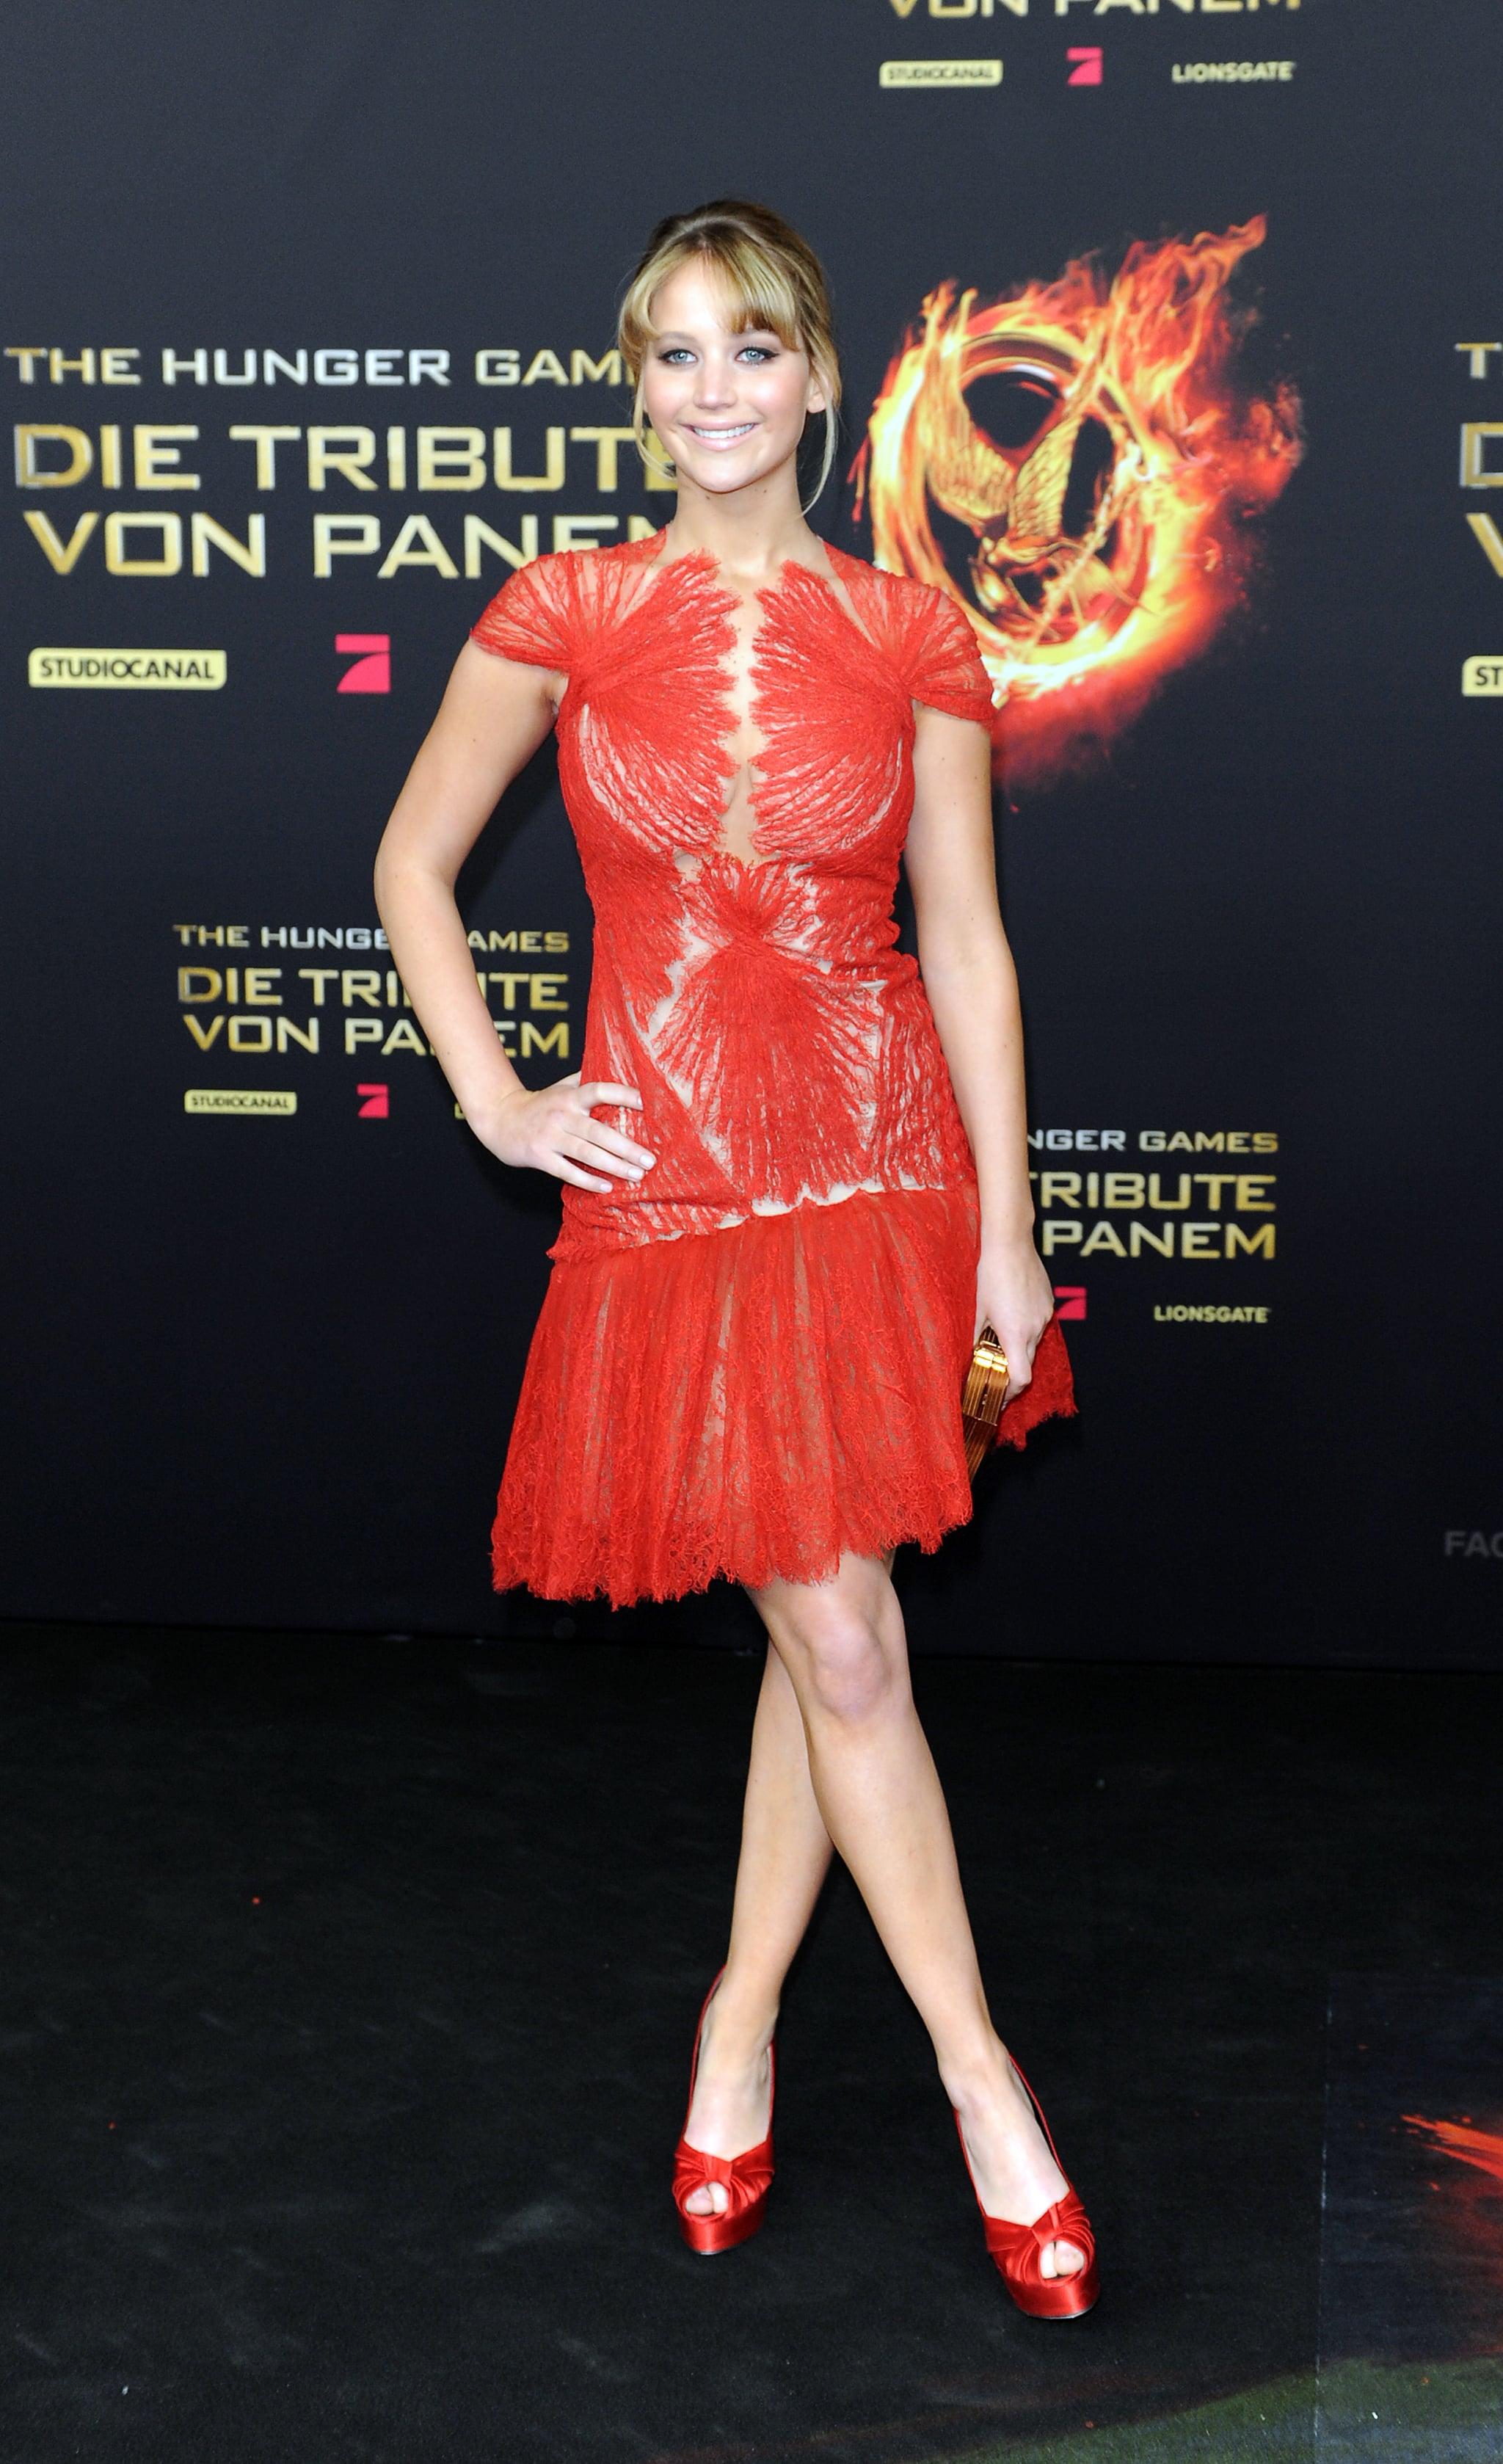 Jennifer Lawrence stepped out for the Berlin premiere of The Hunger Games in a this flirty, feminine Marchesa, red Giuseppe Zanotti heels to match, and a gold Ferragamo clutch in hand –  the perfect balance of femininity and sex appeal.